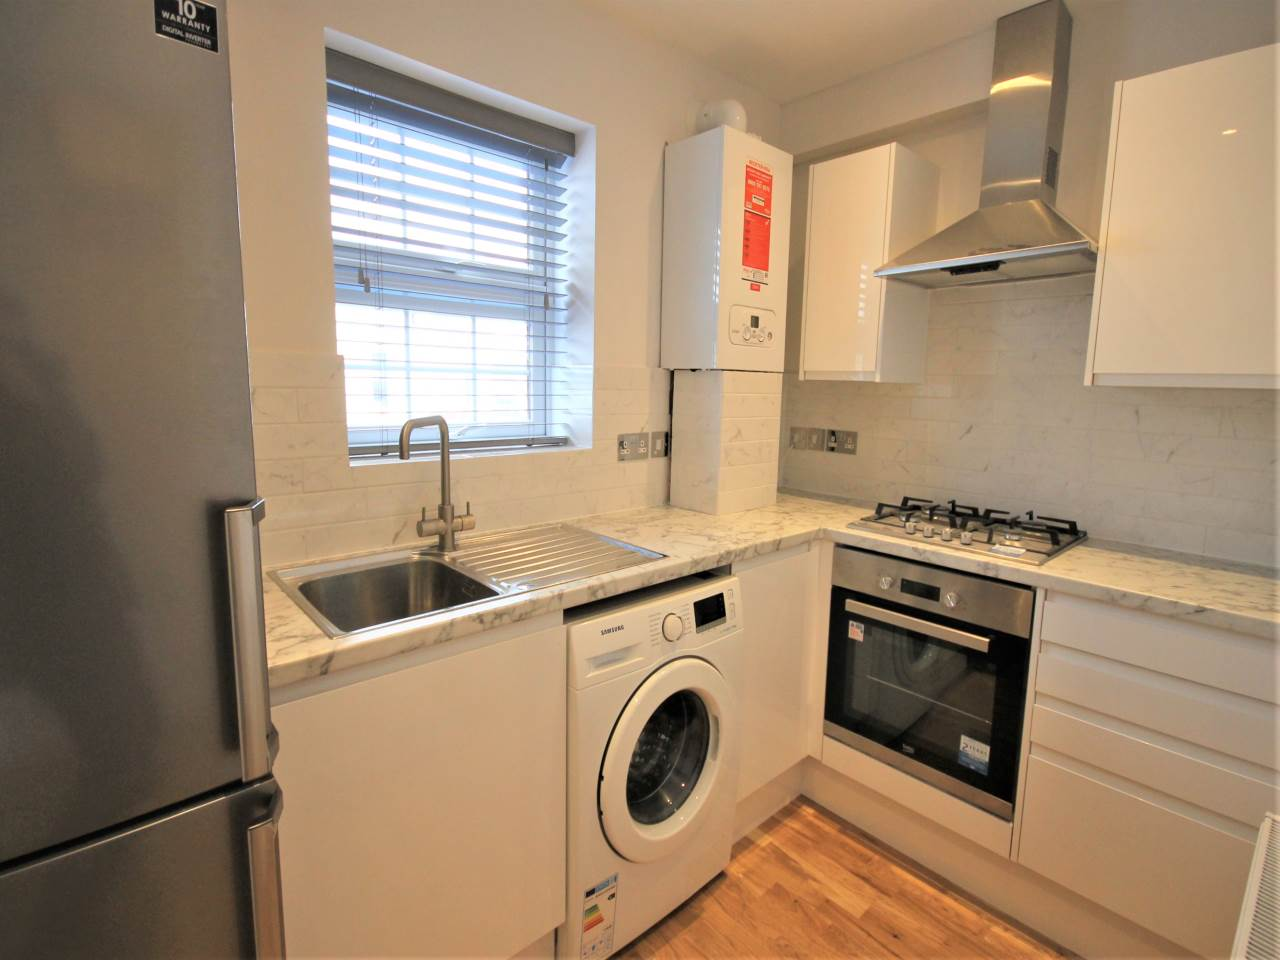 Studio-flat to rent in Chadwell Heath, RM6